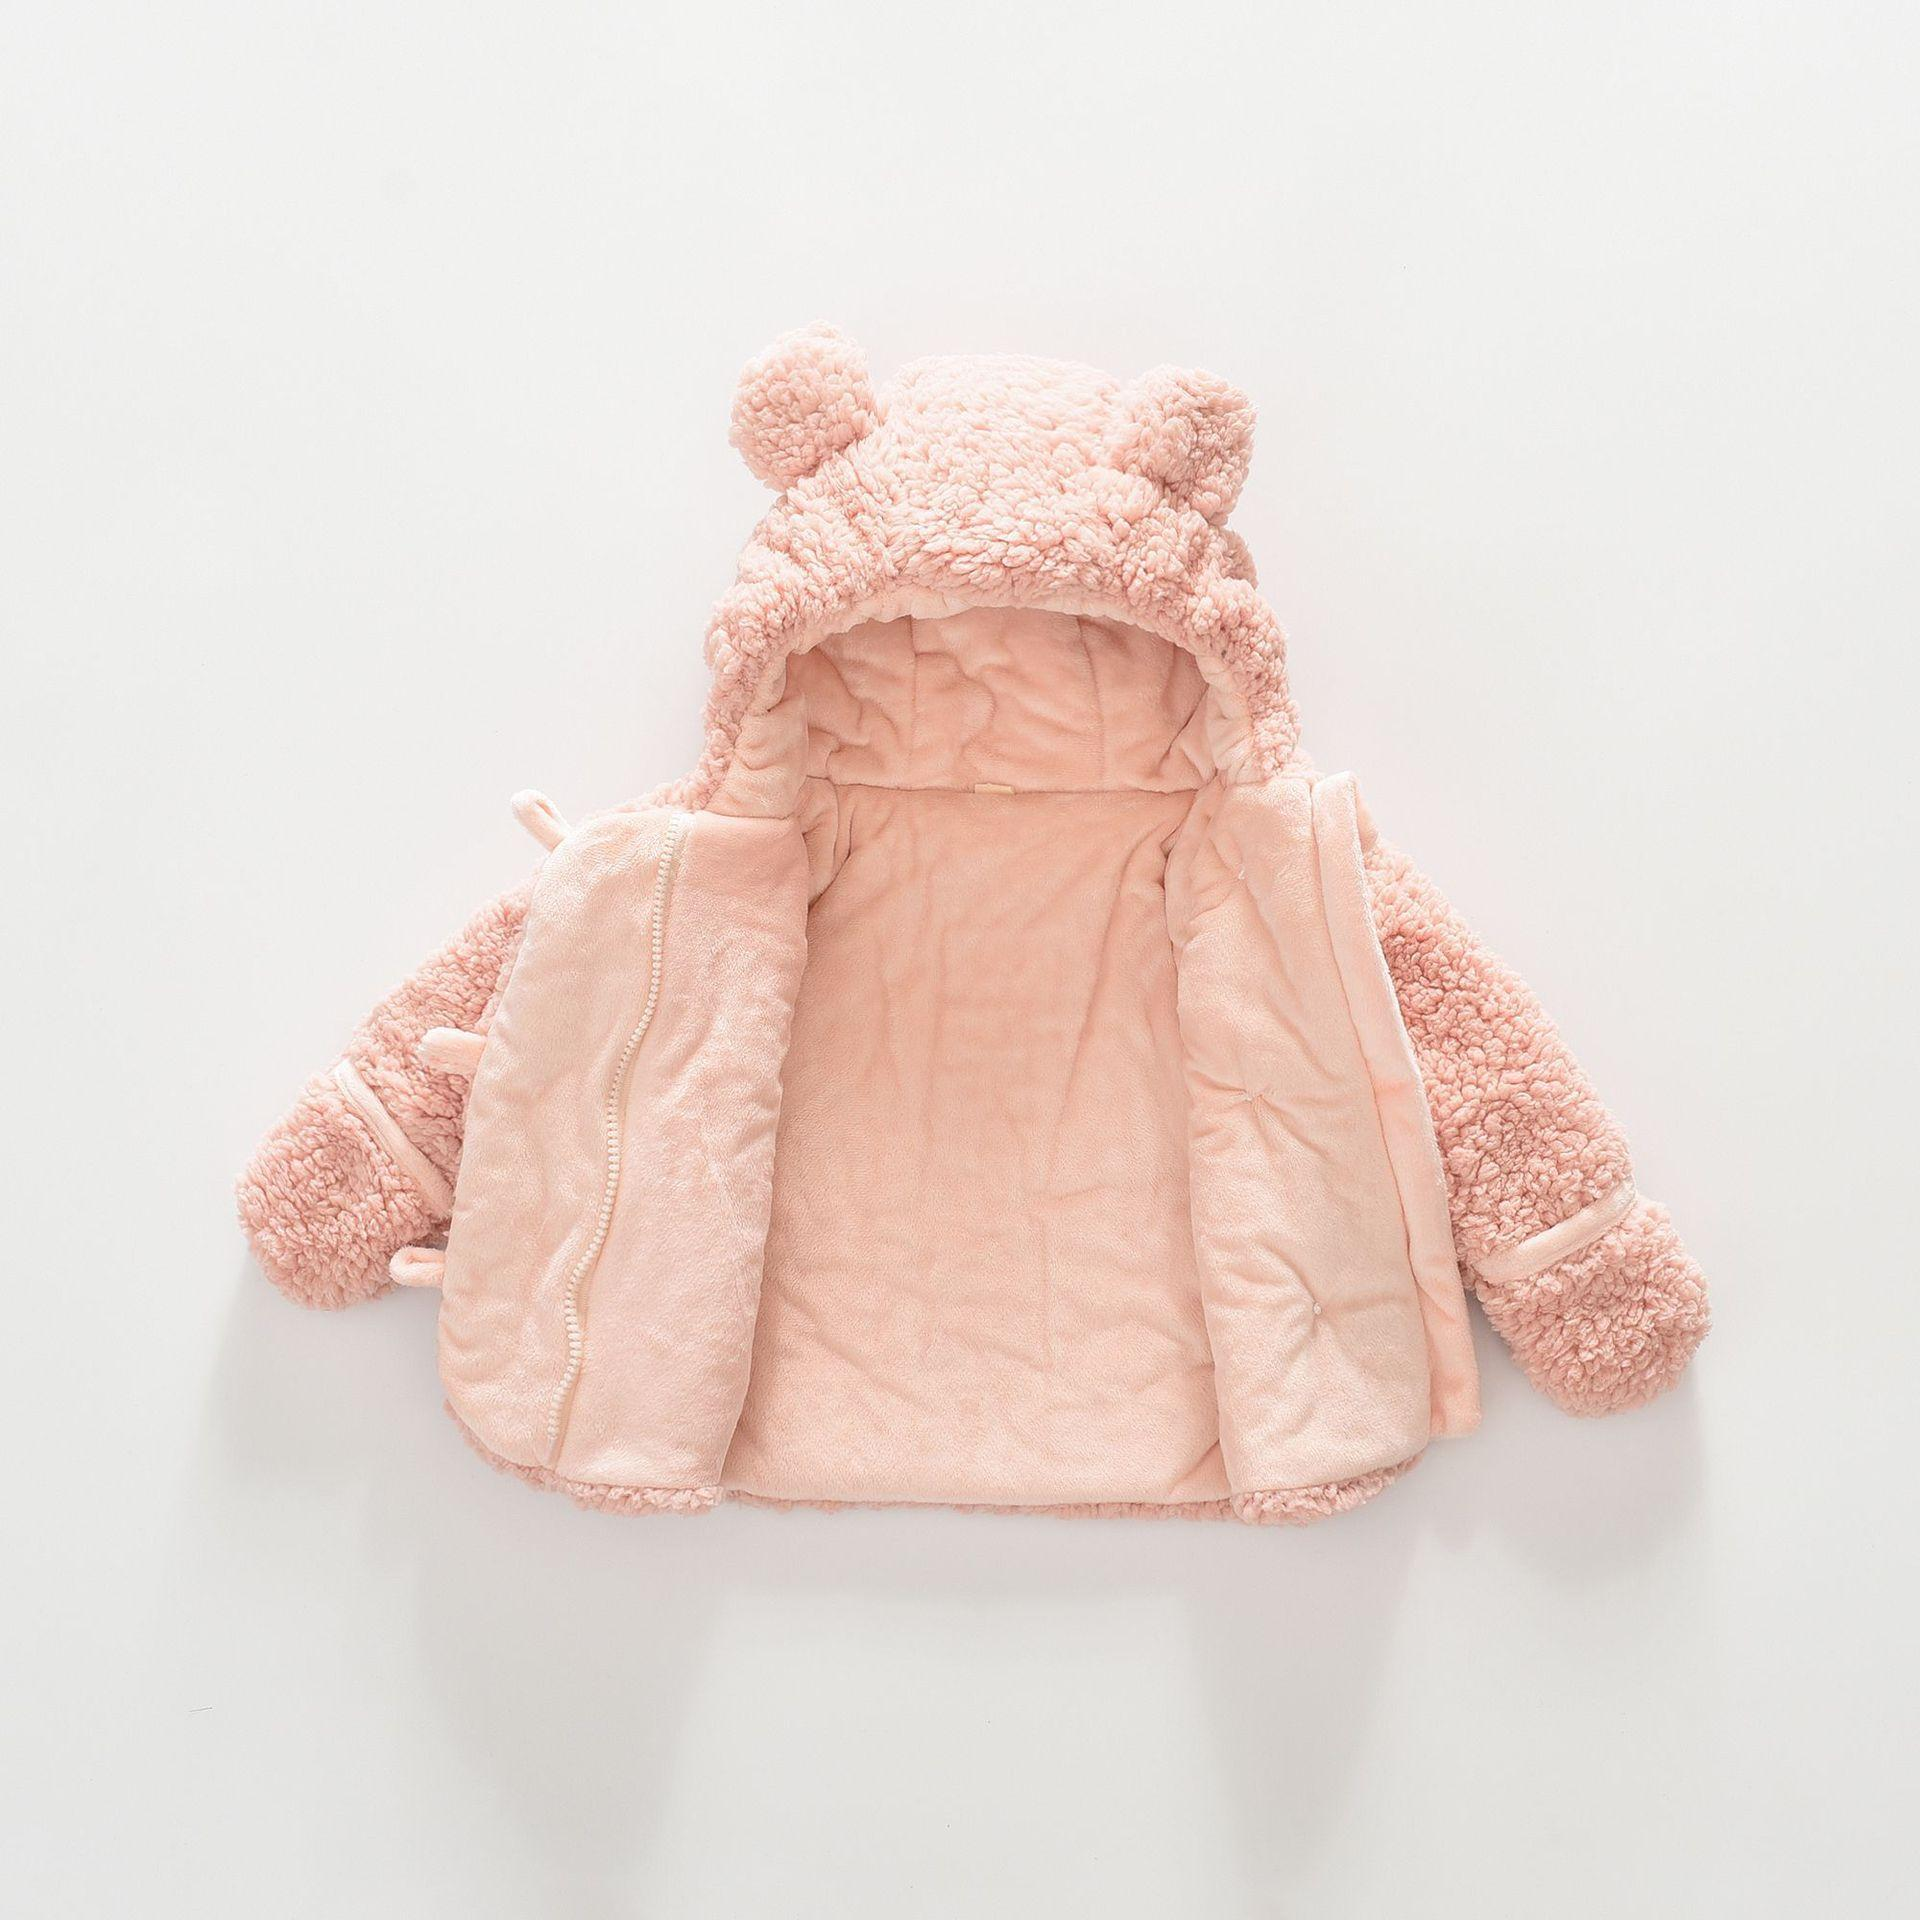 2019 Cute Infant Baby Girls Boys Wool Coats Warm Outfits Solid Ears Hooded Autumn Winter Clothes 2 Colors